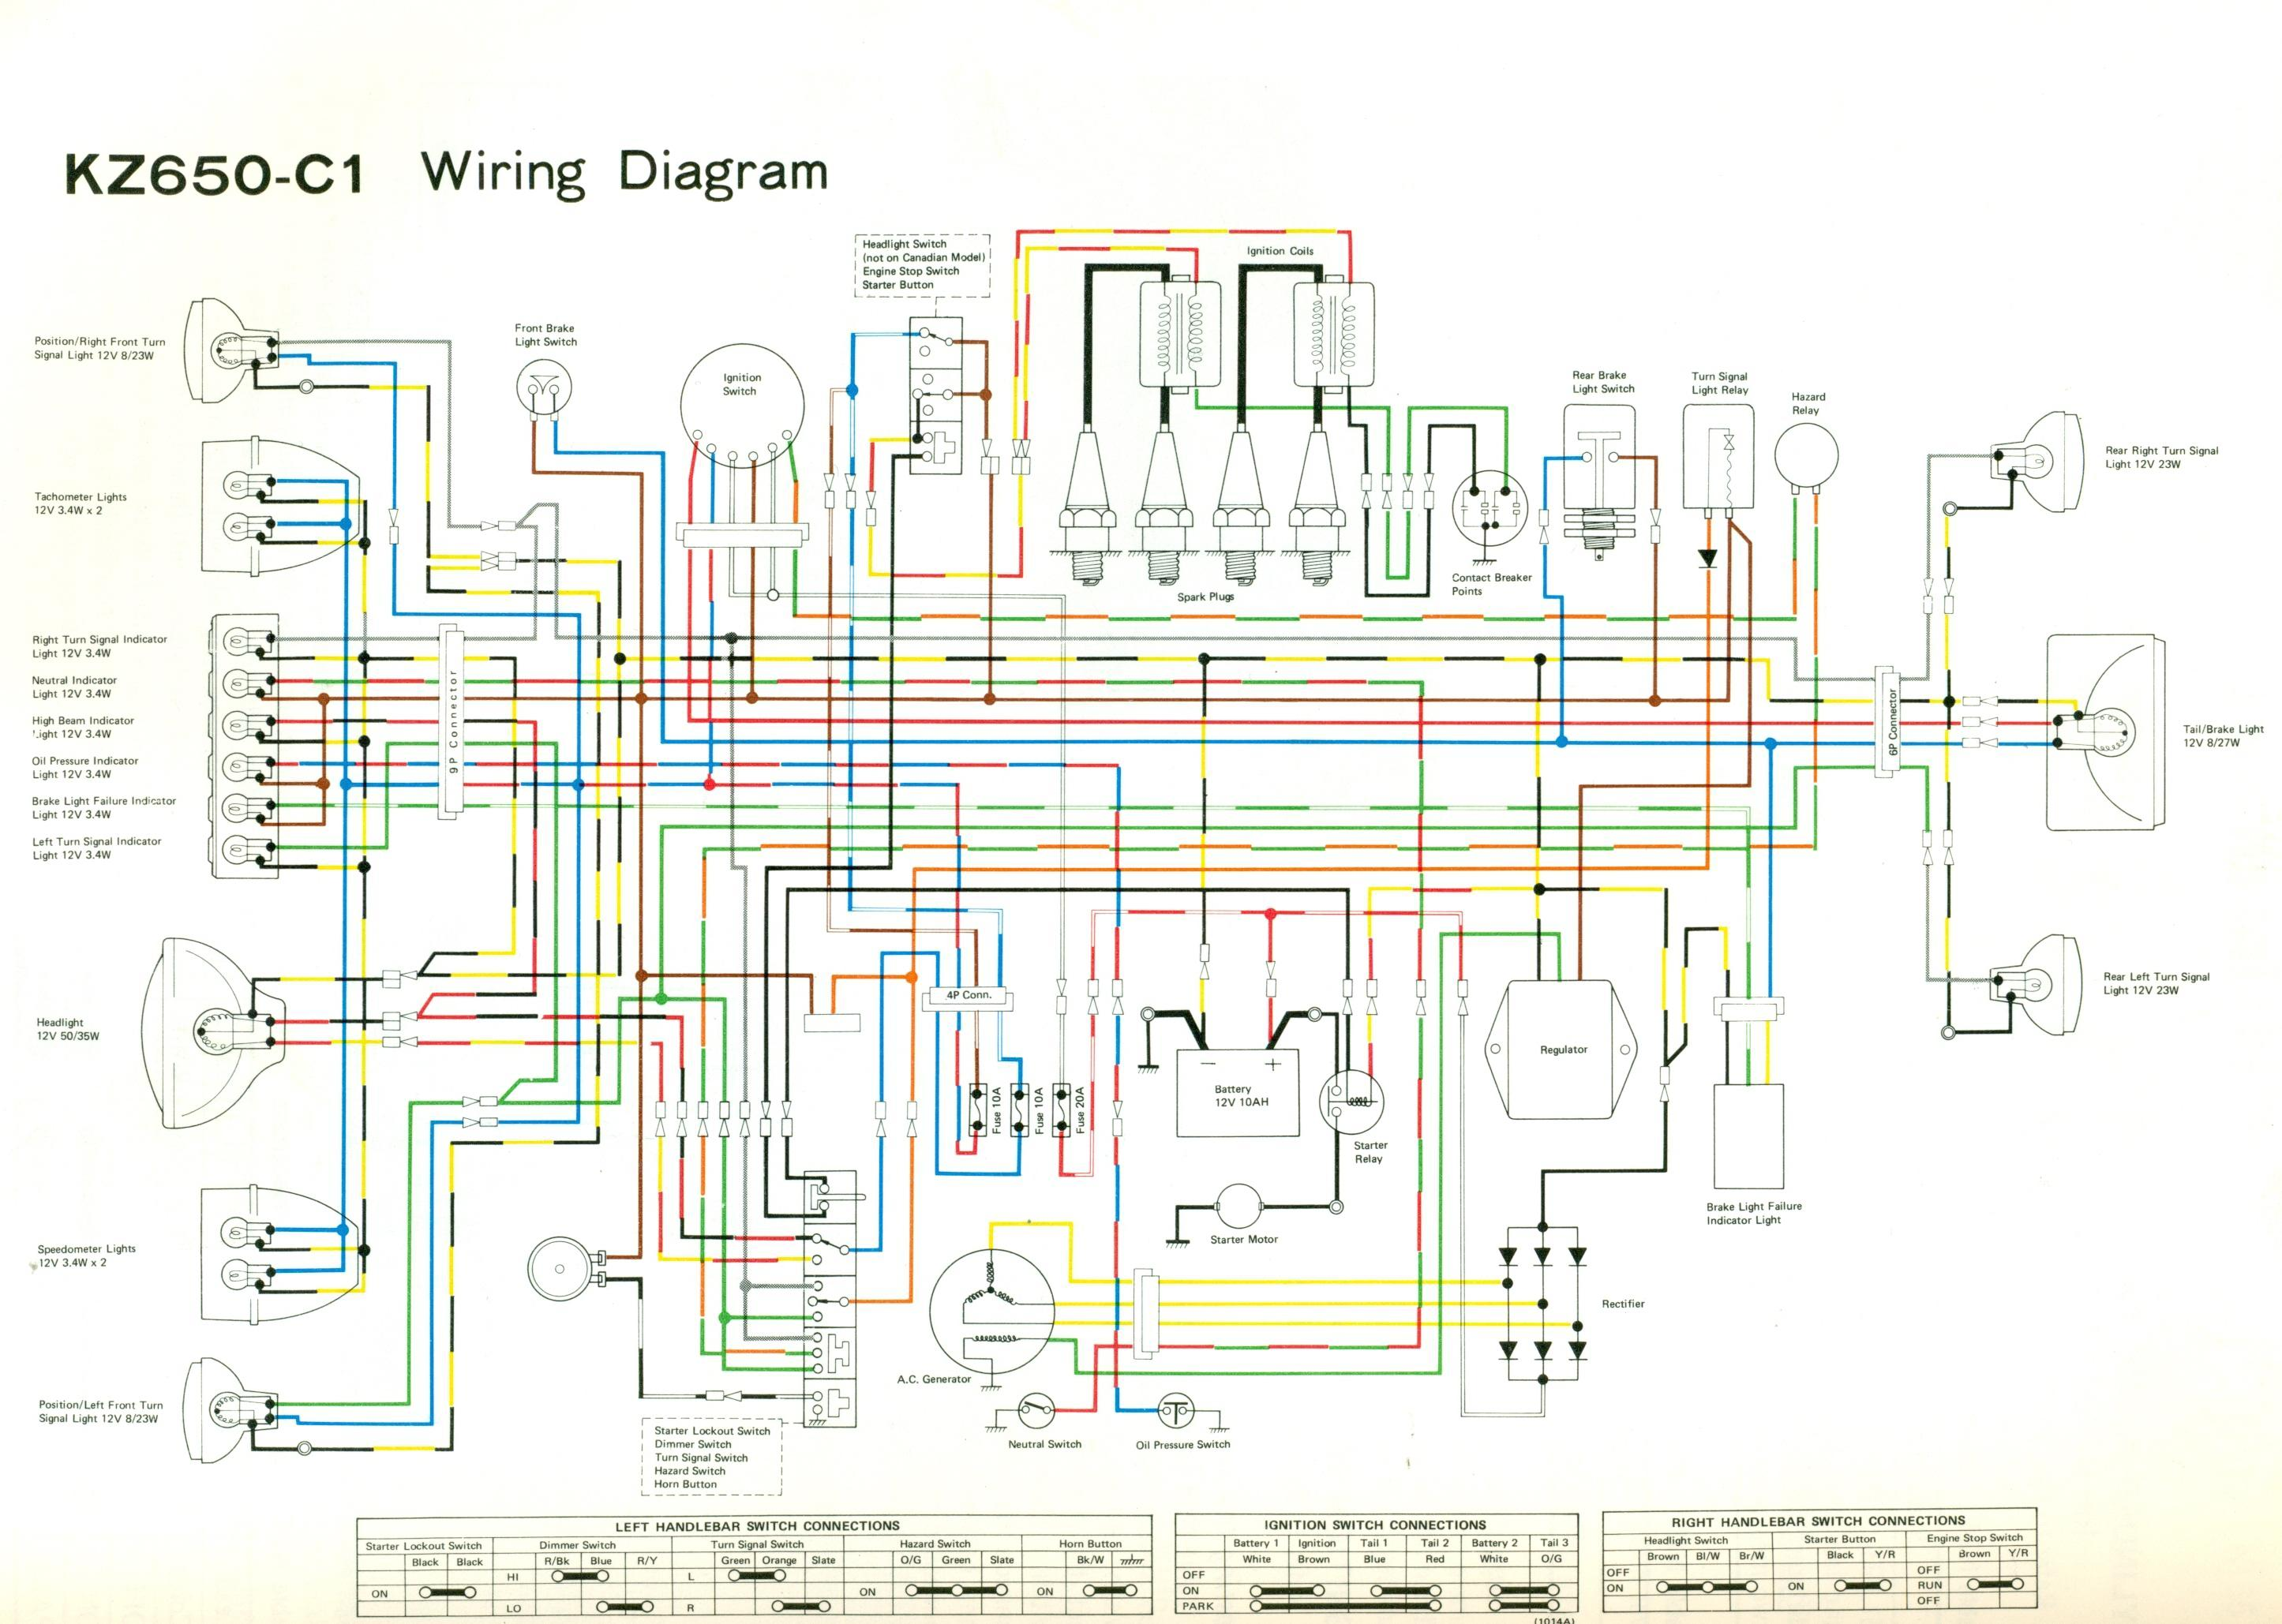 Honda C90 Wiring Diagram 12v Library Cb750 Furthermore Volt Meter With Shunt Glow Plug Relay Archives Joescablecar Best Kz650 C